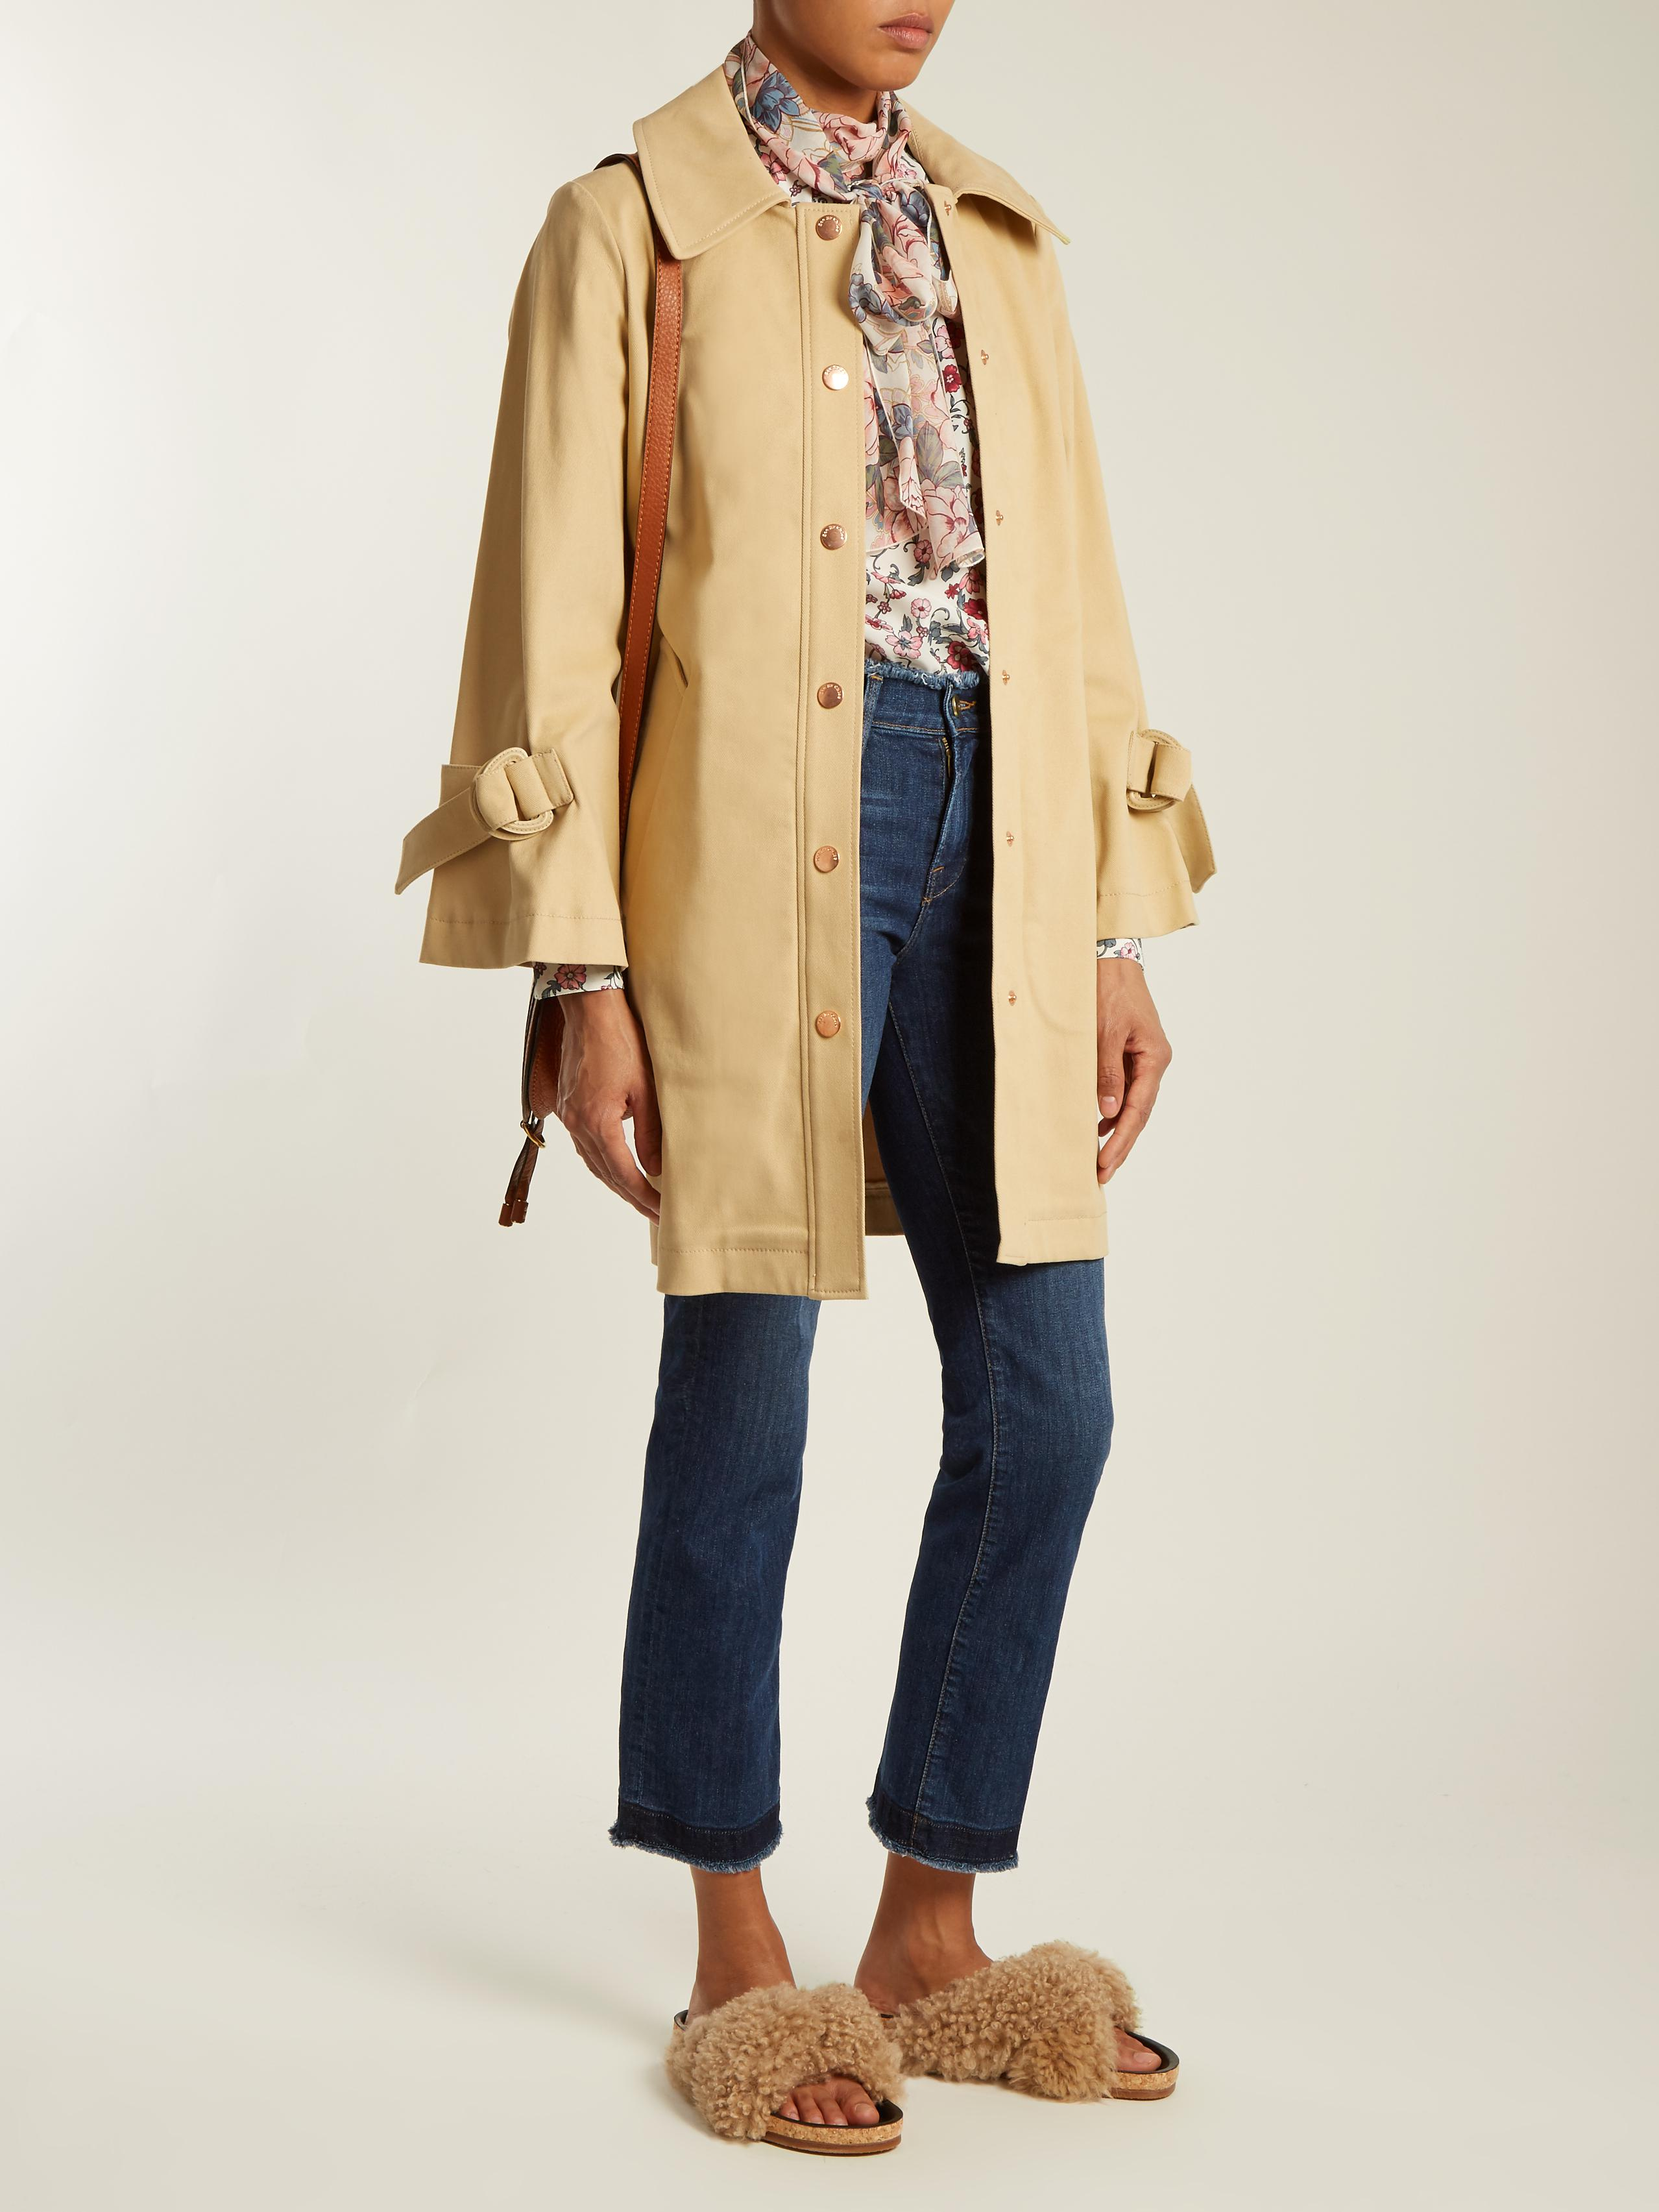 483517b04da3 Lyst - See By Chloé Tie-sleeve Stretch-cotton Coat in Natural